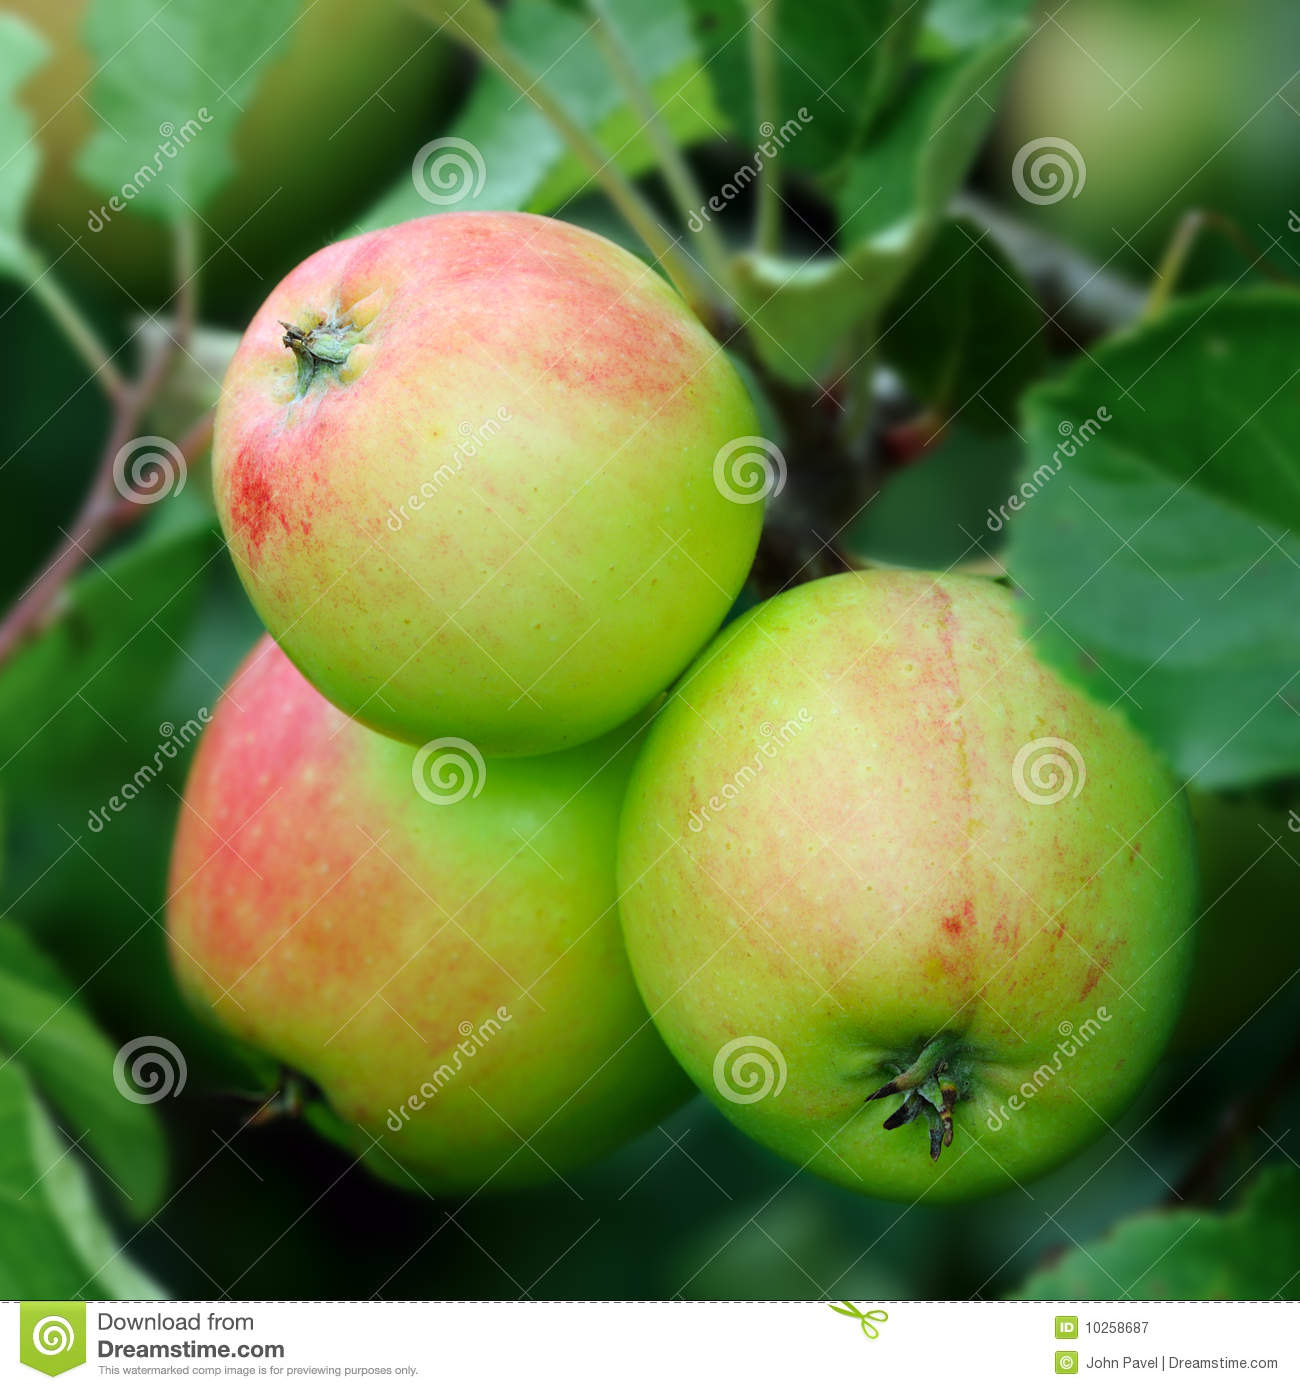 how to get green apples to ripen